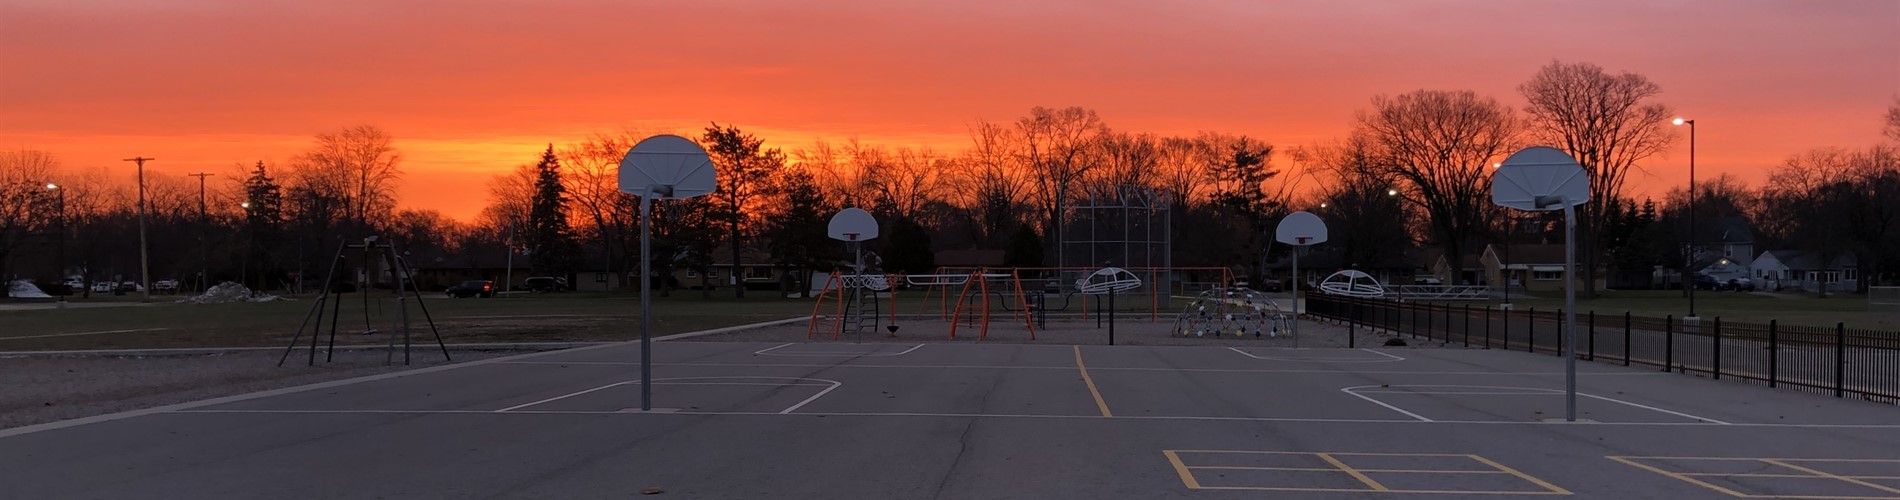 Sunrise at school